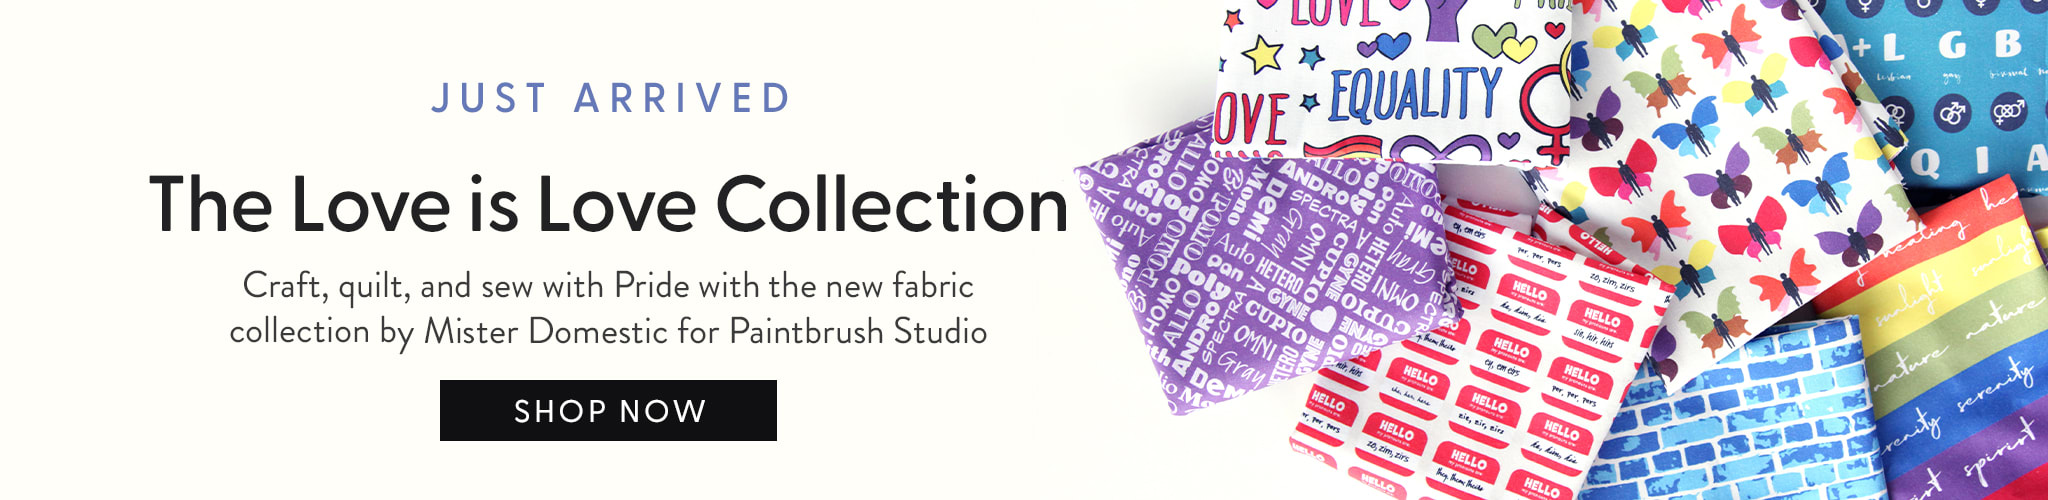 Just Arrived. The Love is Love Collection. Craft, quilt, and sew with Pride with the new fabric collection by Mister Domestic for Paintbrush Studios